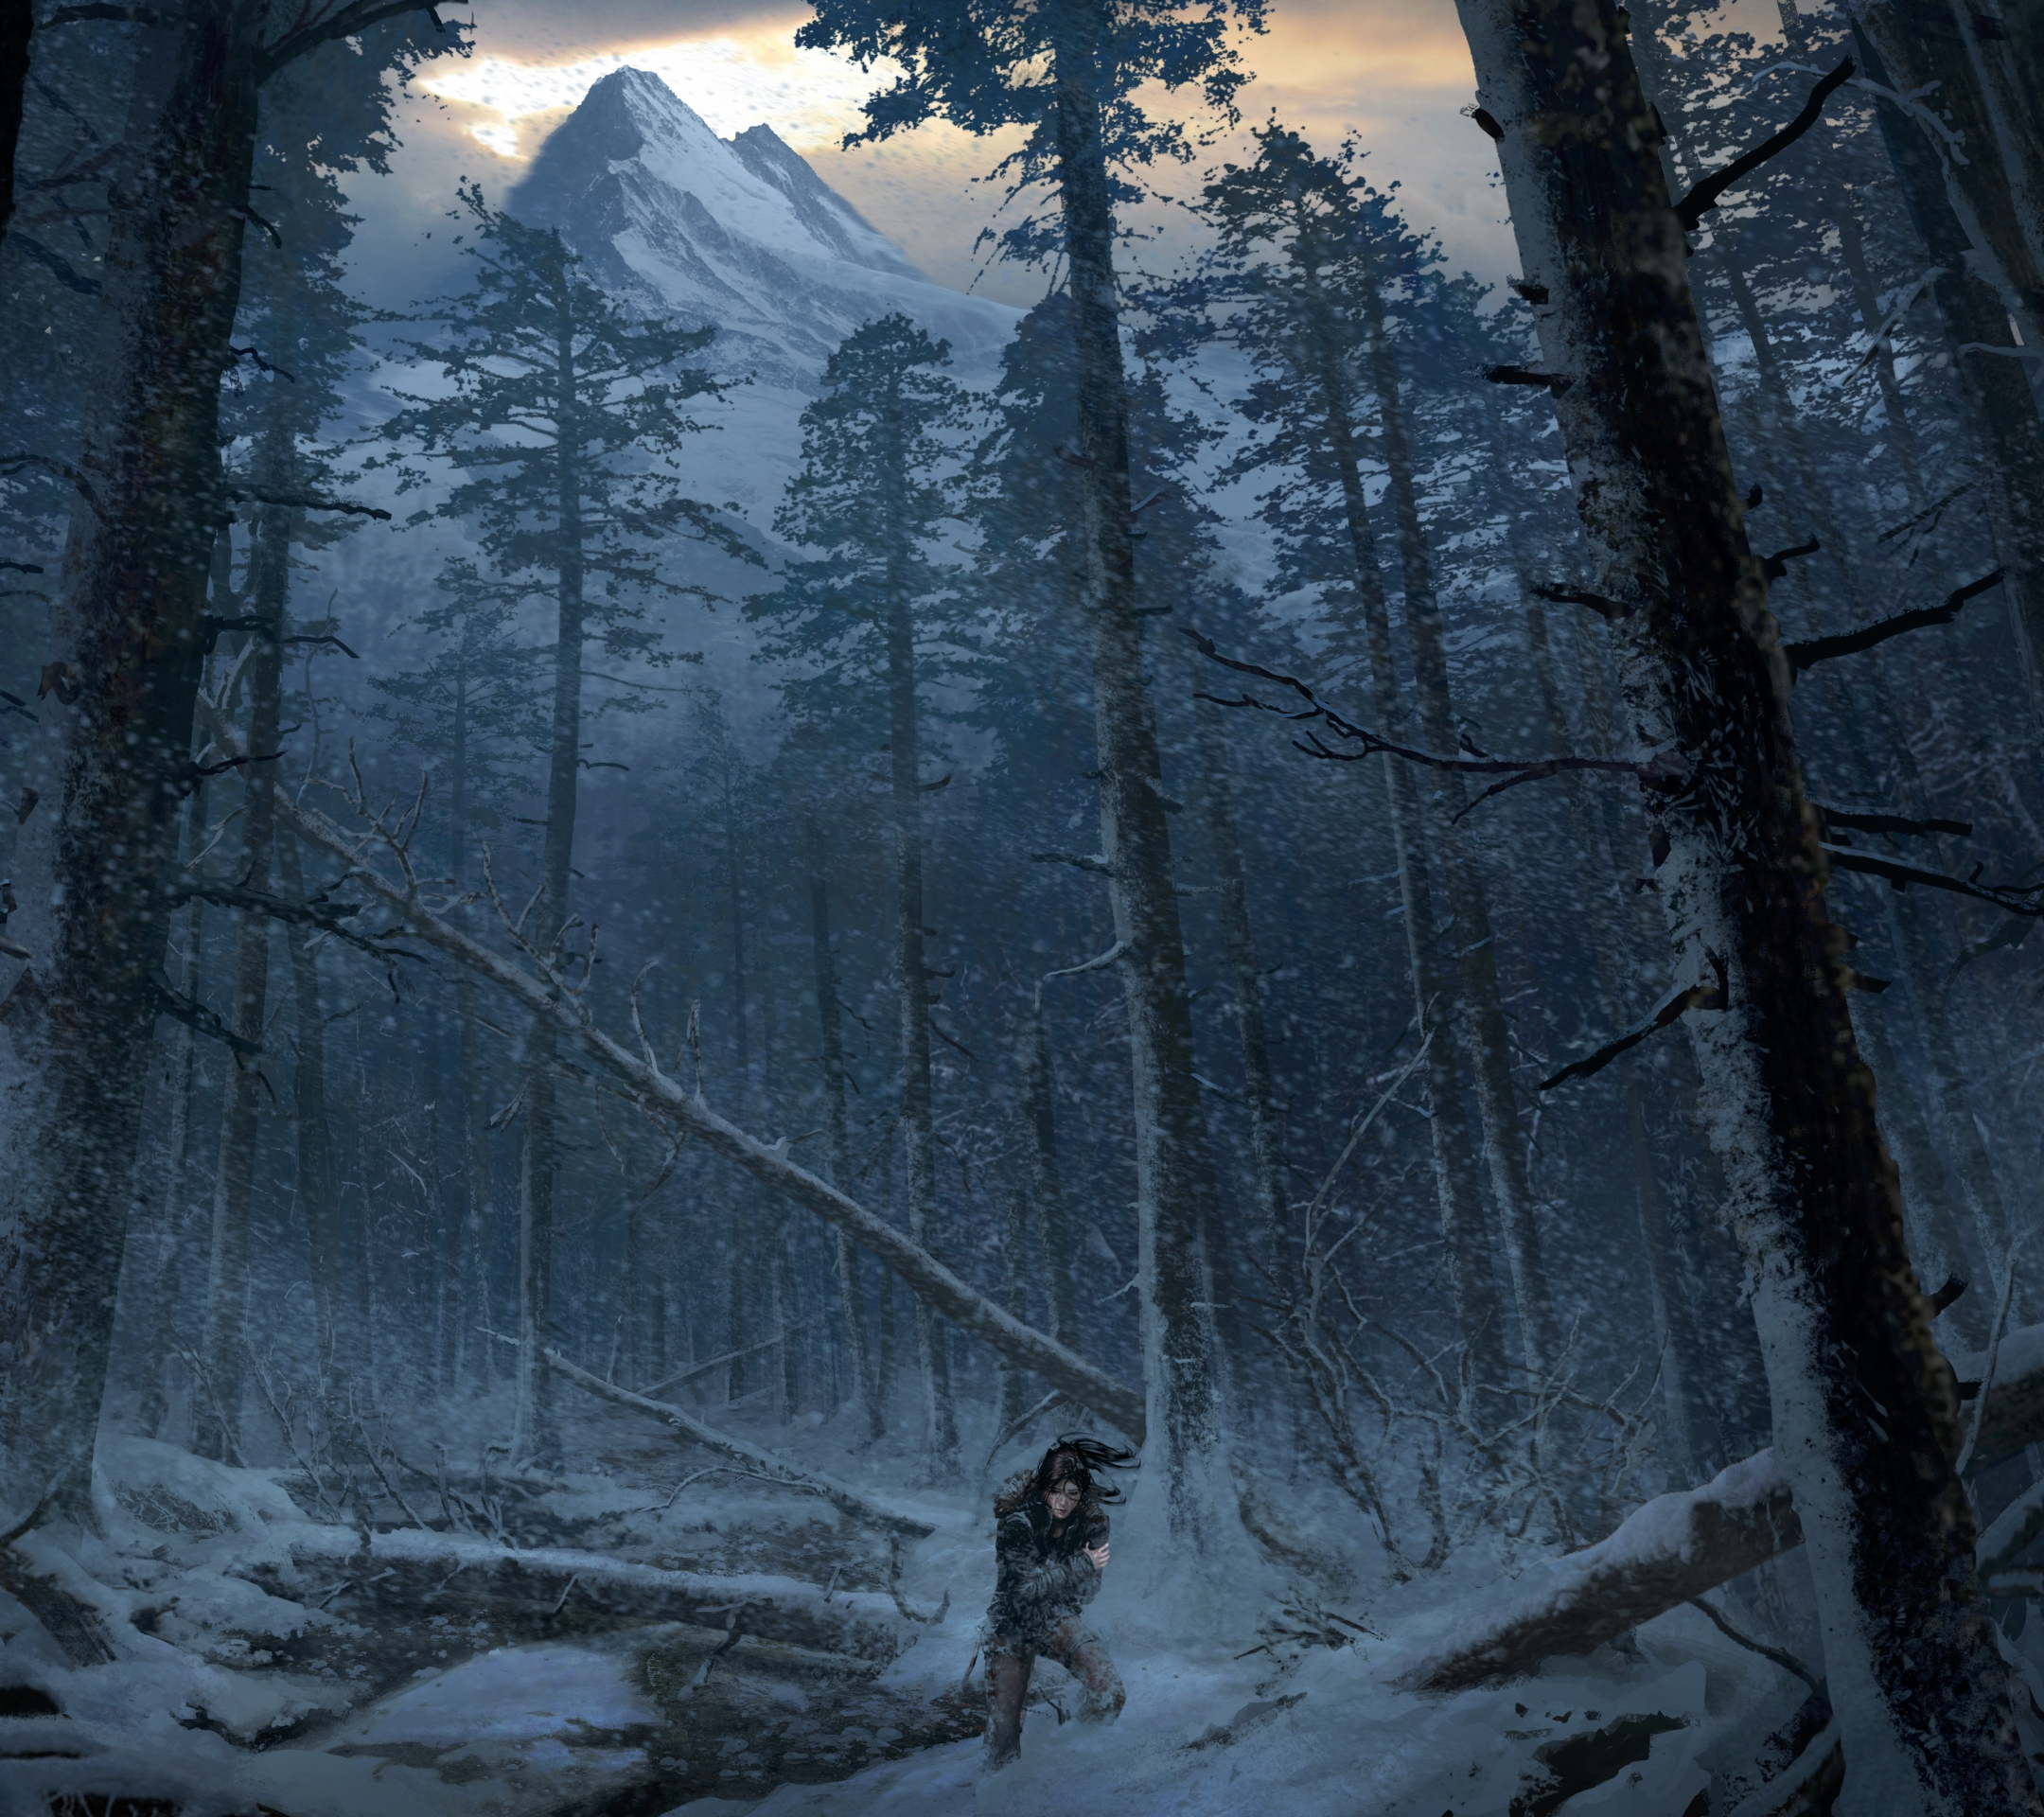 Tomb Raider Hd Wallpapers 1080p: Rise Of The Tomb Raider Video Game Wallpapers (42